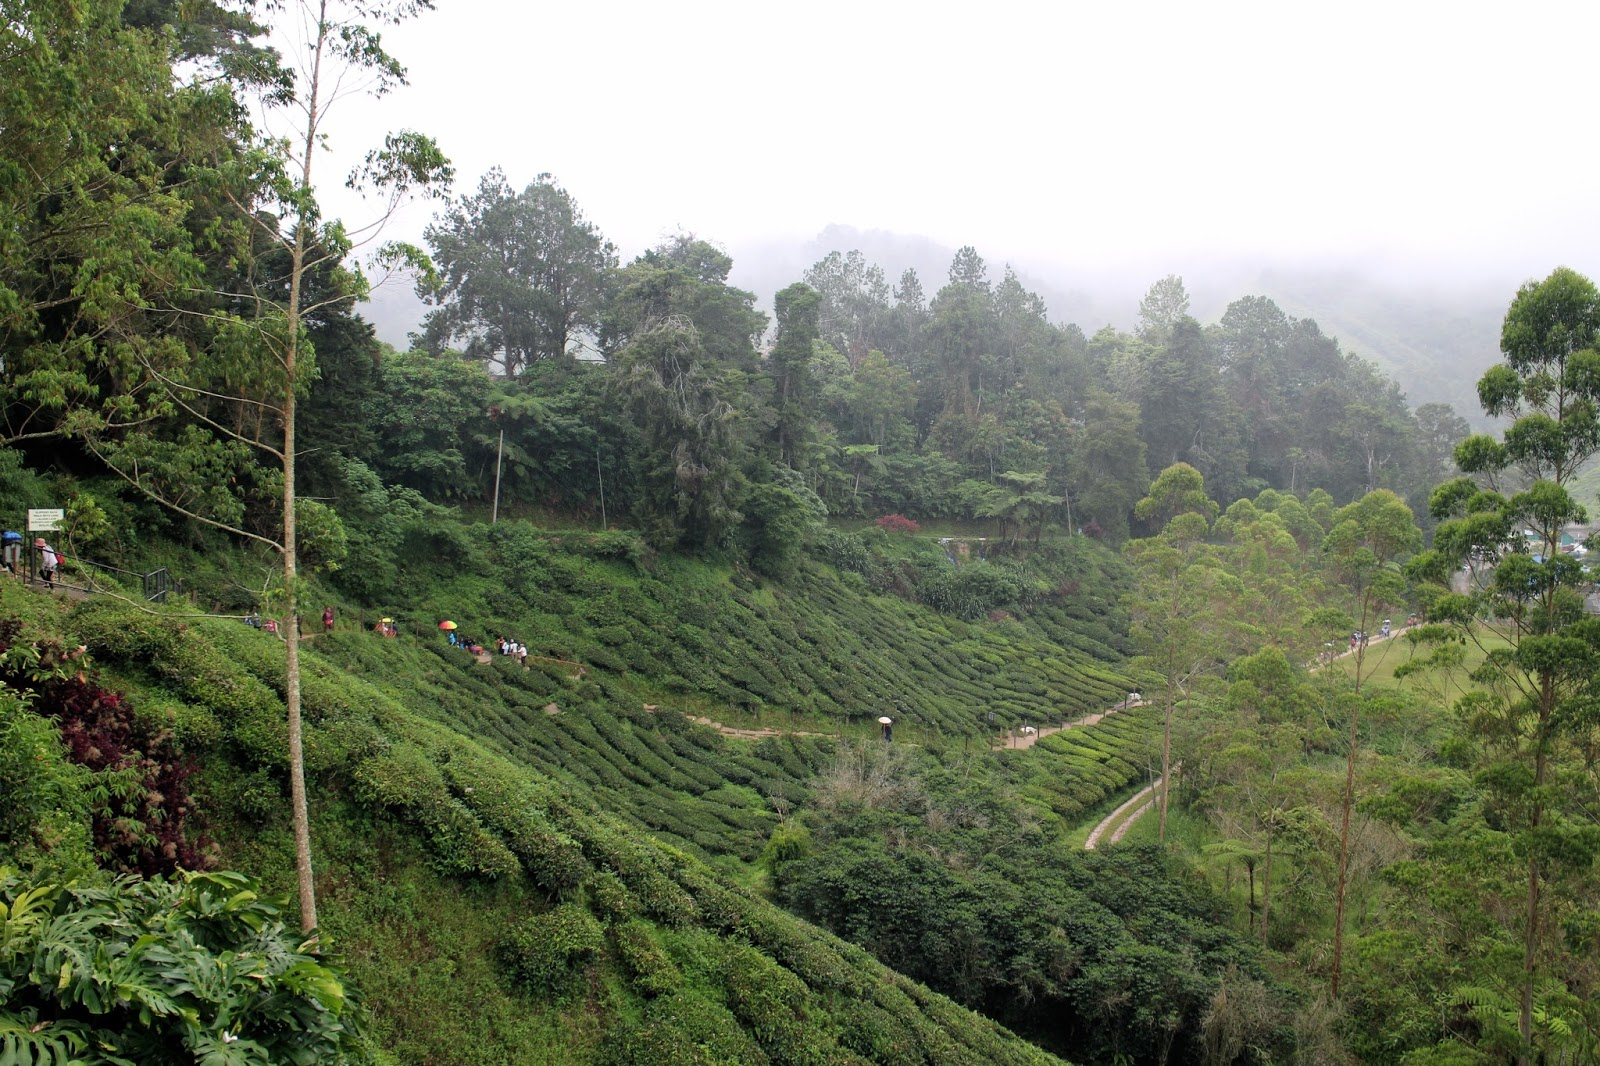 View across the Cameron Highland tea plantations